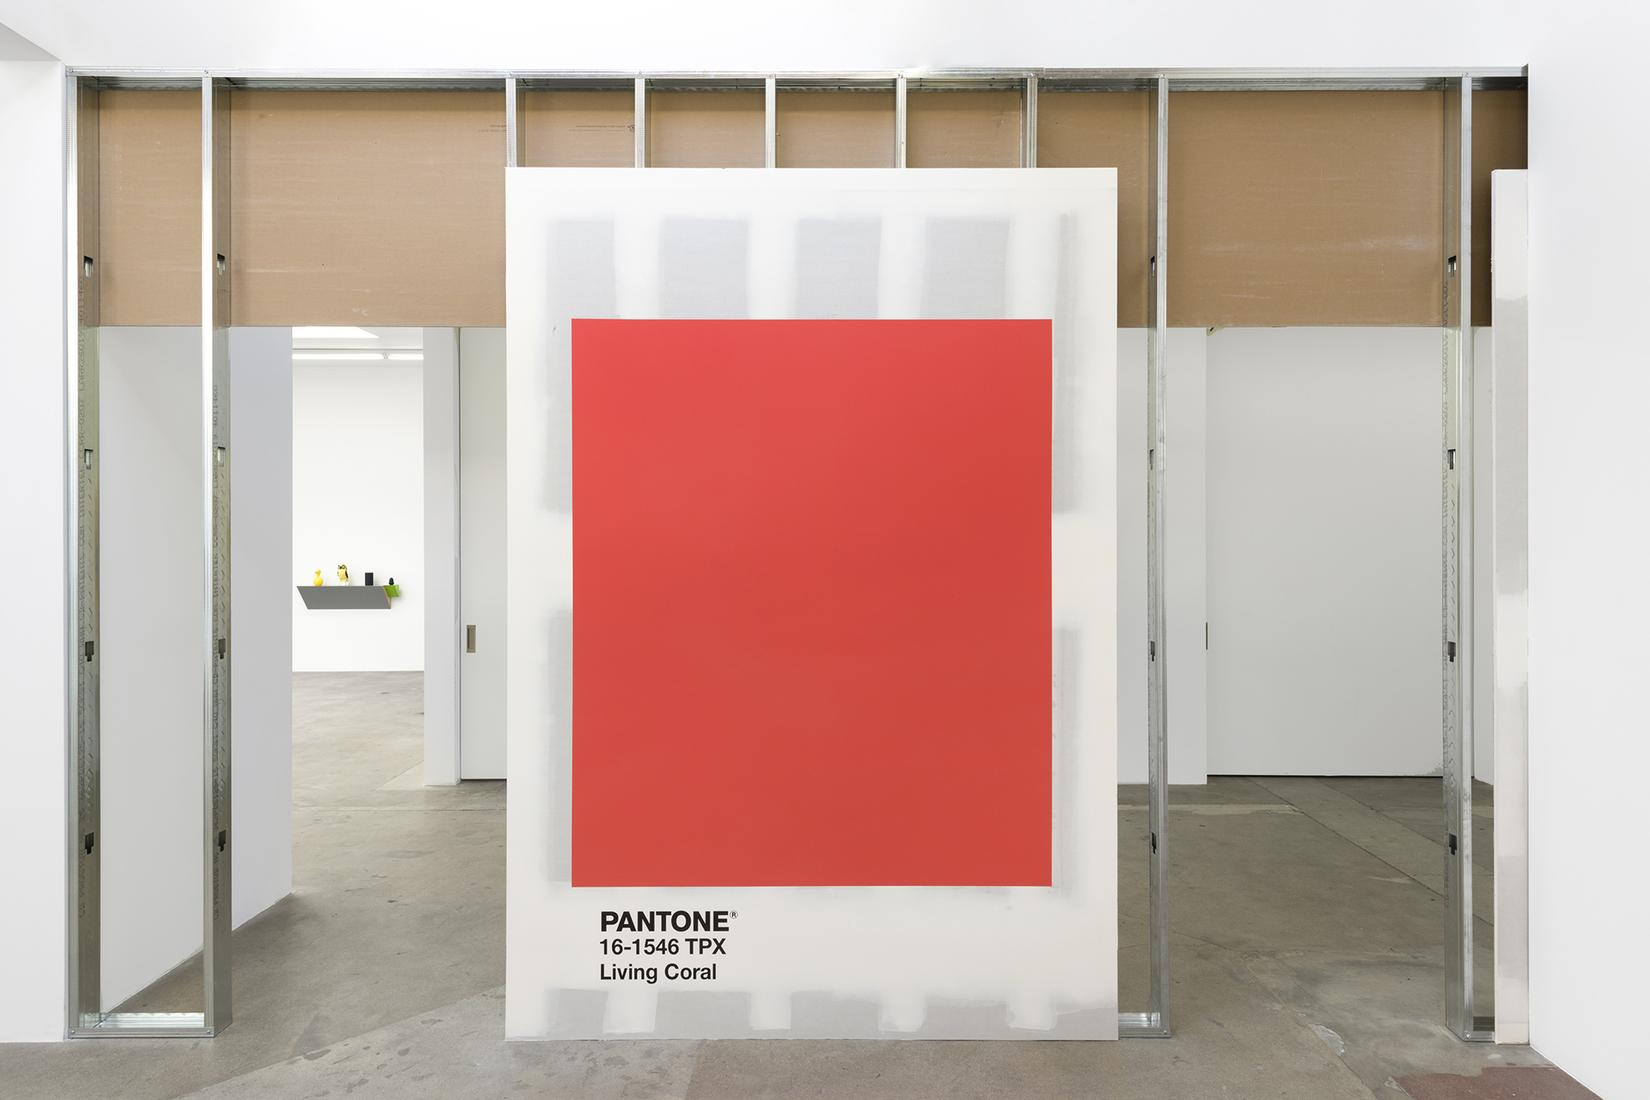 Modular Exhibition Stands Tallahassee : Châtelet 2014